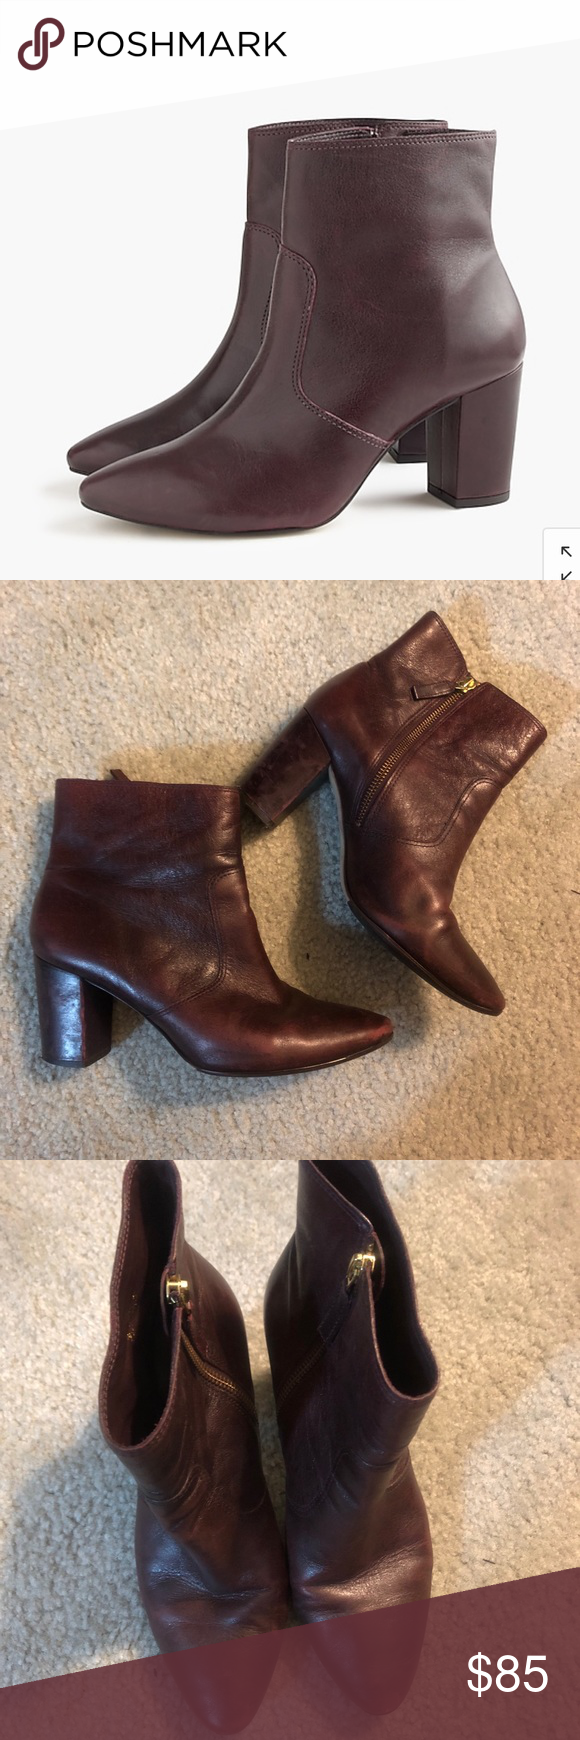 6eb095d5dcf2 J Crew Burgundy Leather Booties Gorgeous burgundy   wine colored Leather  zip ankle boots from J. Crew. Sleek and modern